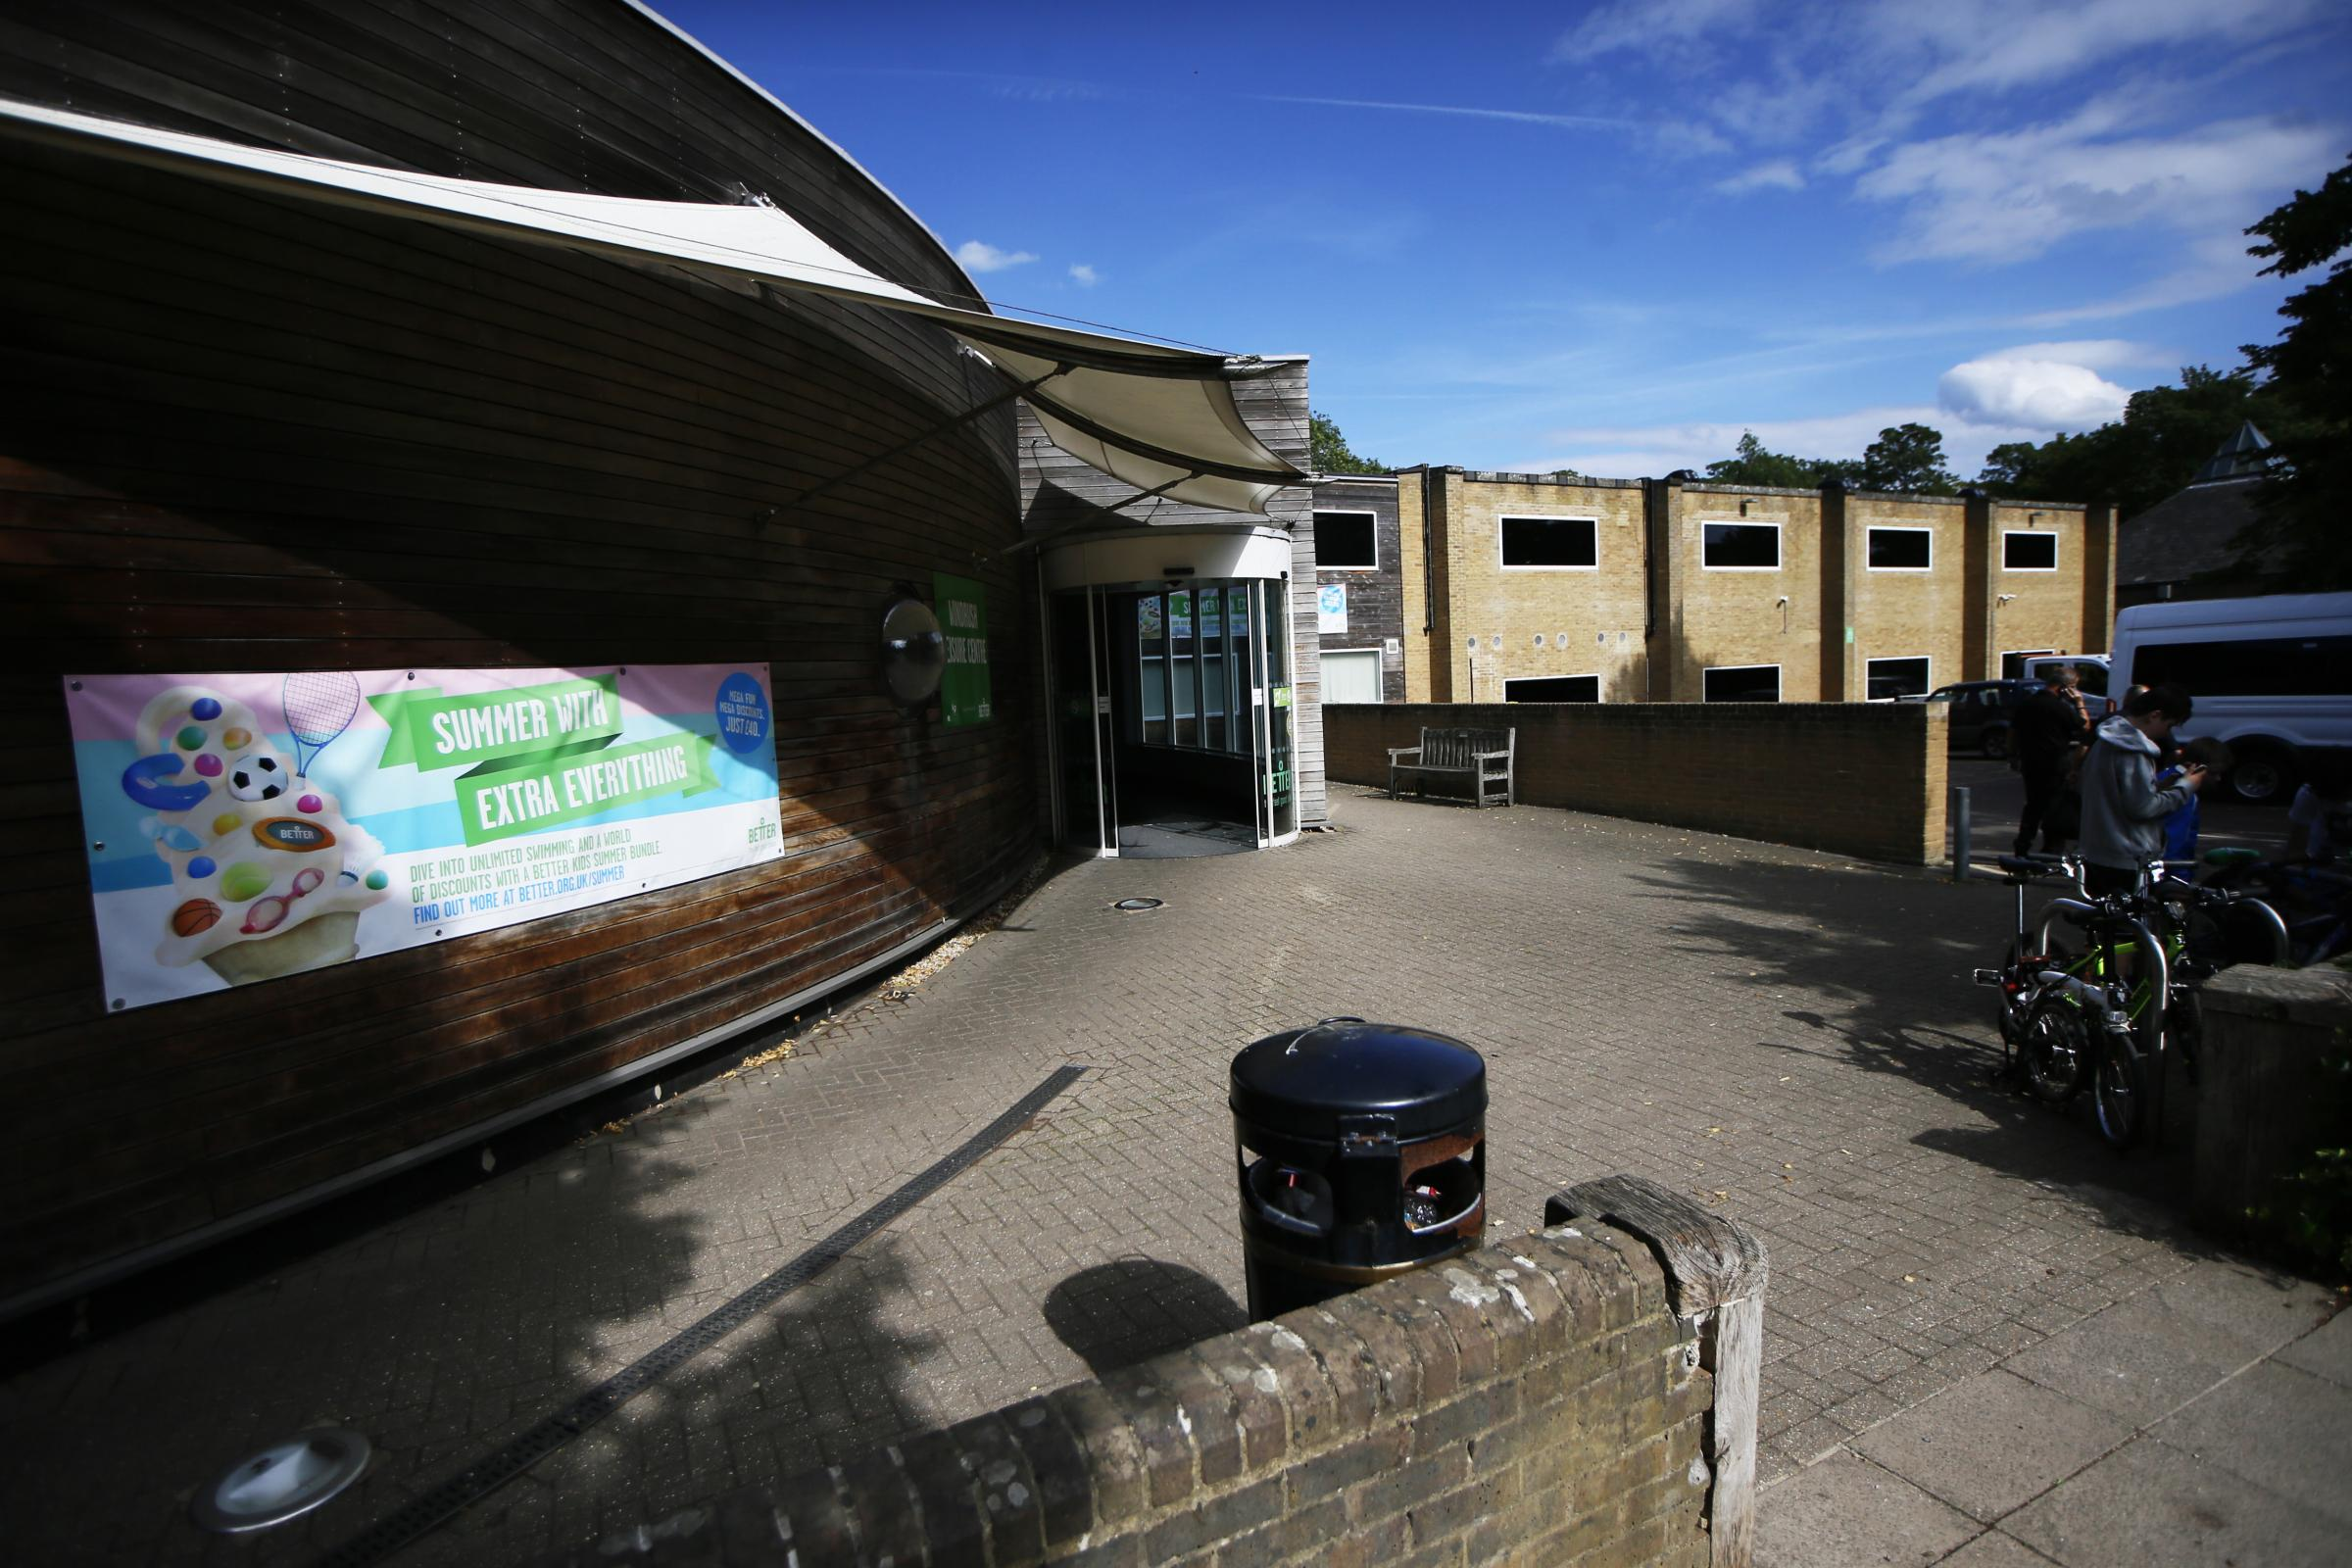 No New Cleanliness Complaints At Witneys Windrush Leisure